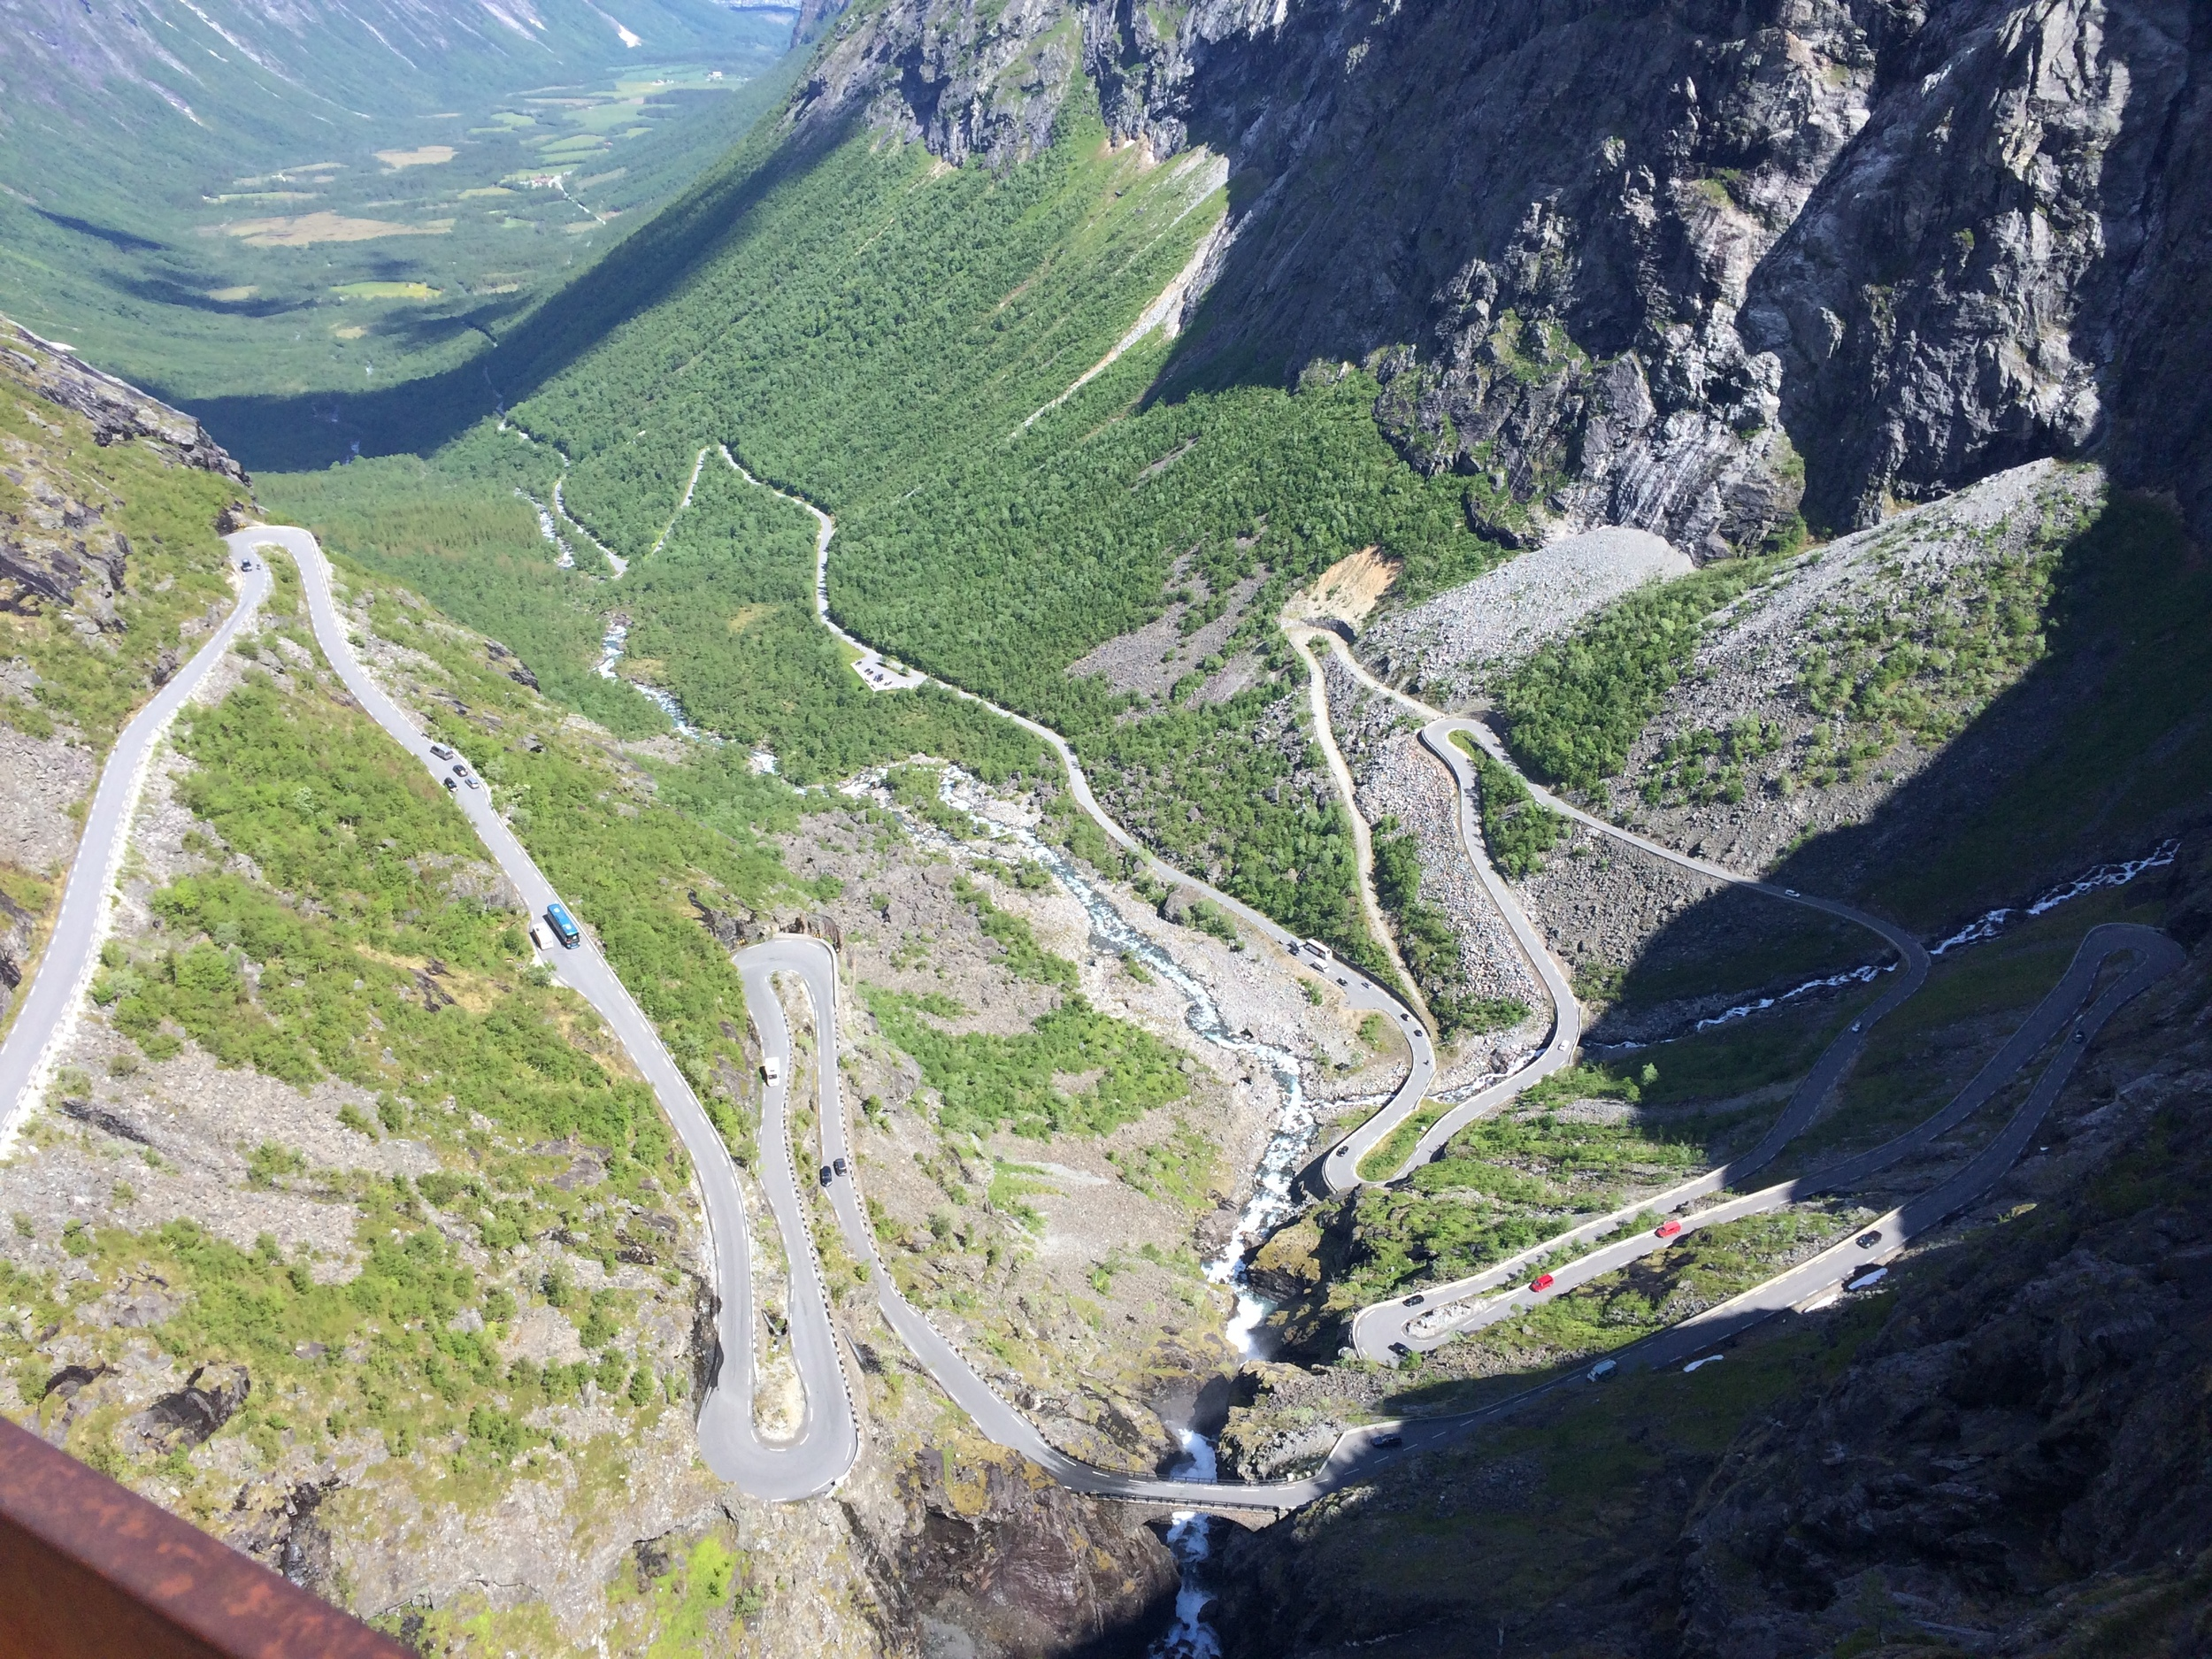 The Trollstigen (Troll's Pass), a mountain road famous for its 11 hairpin turns. It's typically open in mid-May through October, but late snowmelts and early winters can shorten the season.